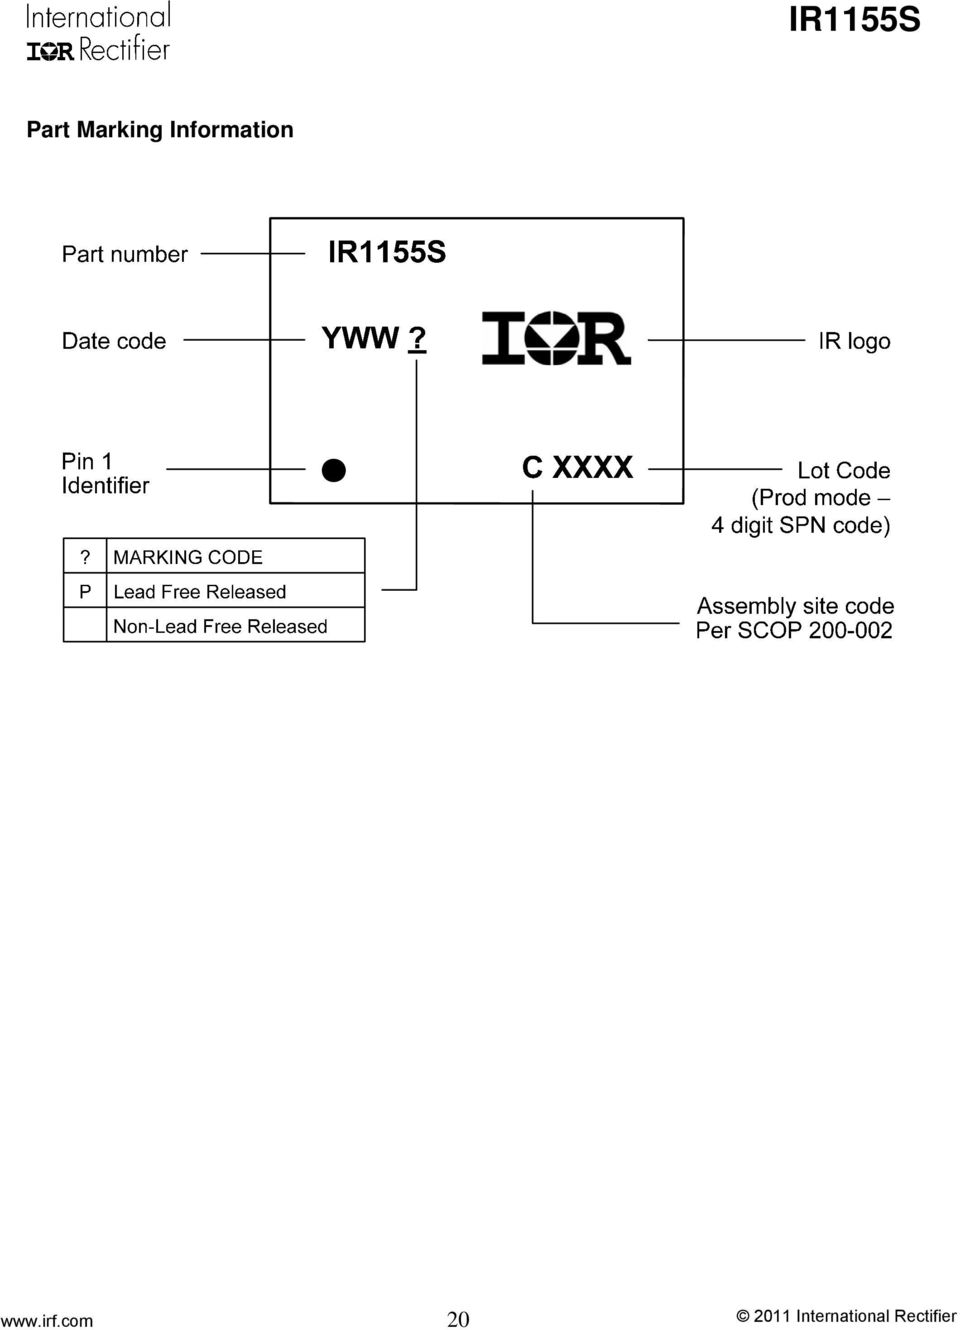 Ir1155s Programmable Frequency One Cycle Control Pfc Ic Pdf Ir2110 High Speed Power Mosfet Lead Assignments And Datasheet 21 Ordering Information Base Part Number Package Type Soic8n Standard Pack Complete Form Quantity Tube Bulk 95 Ir1155spbf Tape Reel